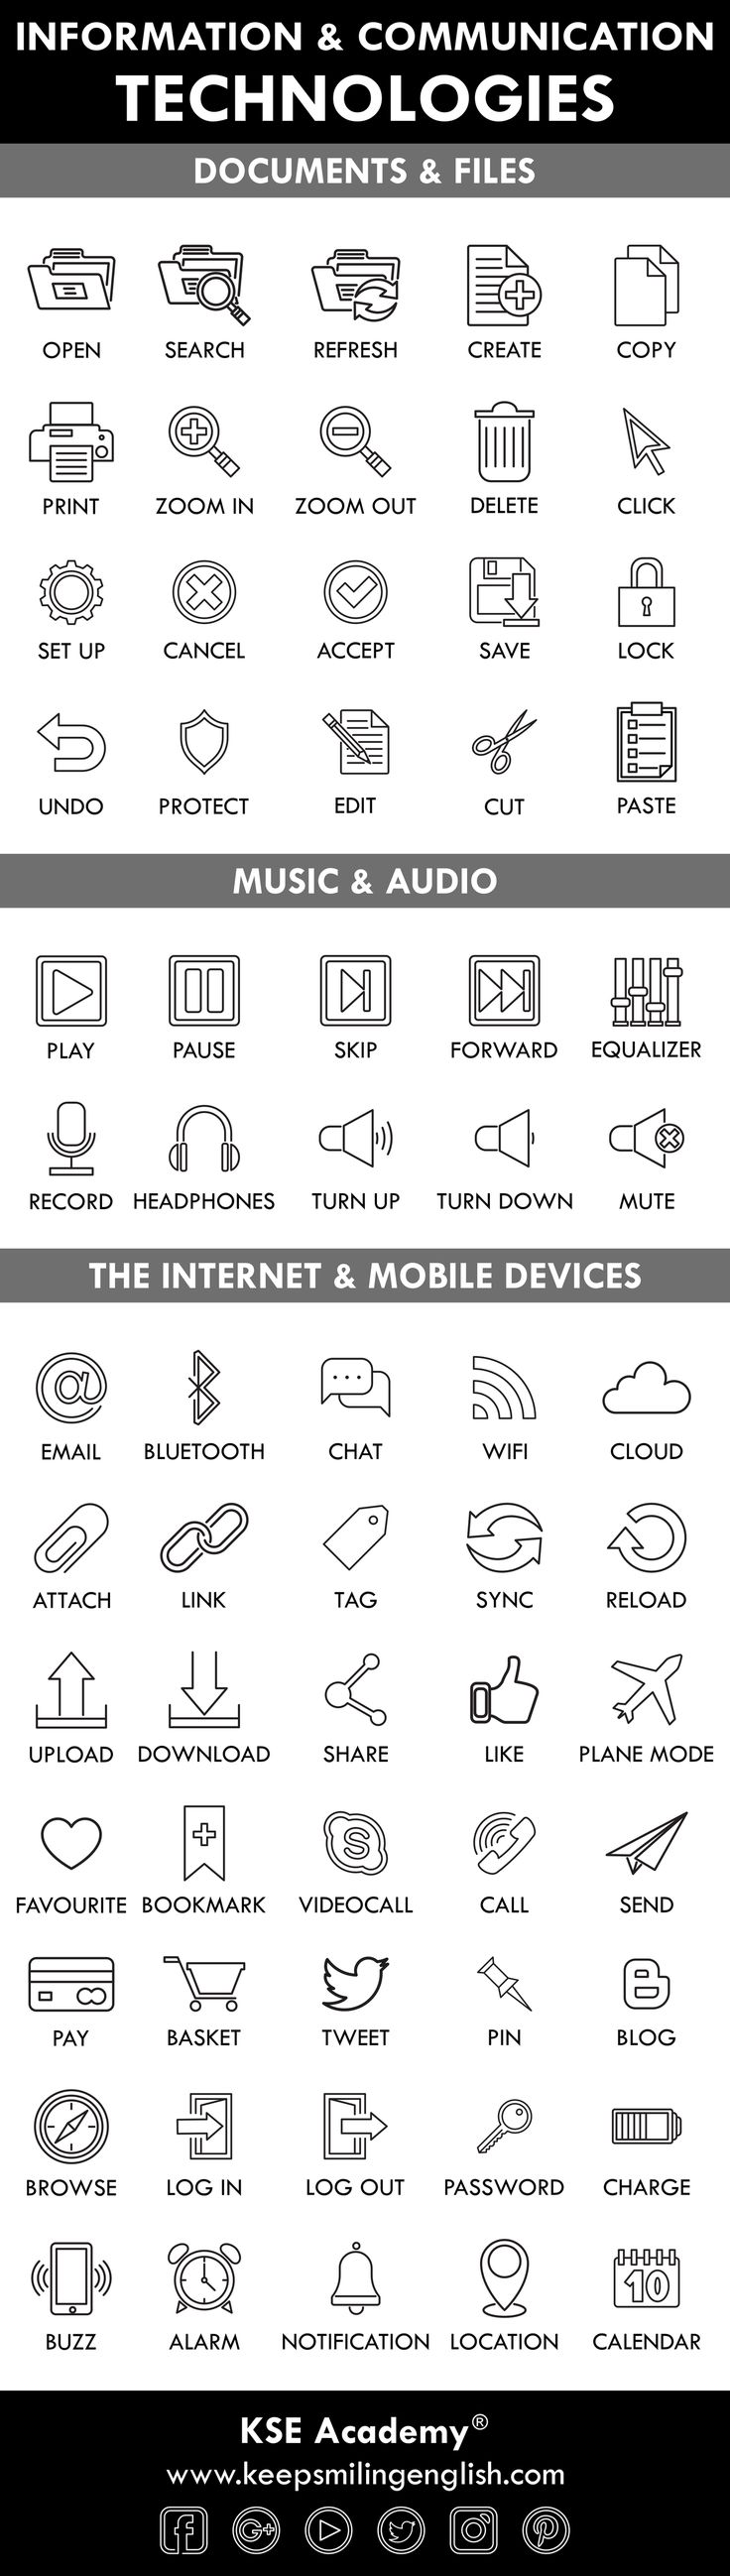 Interested in ICT vocabulary? Here's a few interesting words!  Source: keepsmilingenglish.com  #English #vocabulary #ICT #tech #technology #computers #Internet